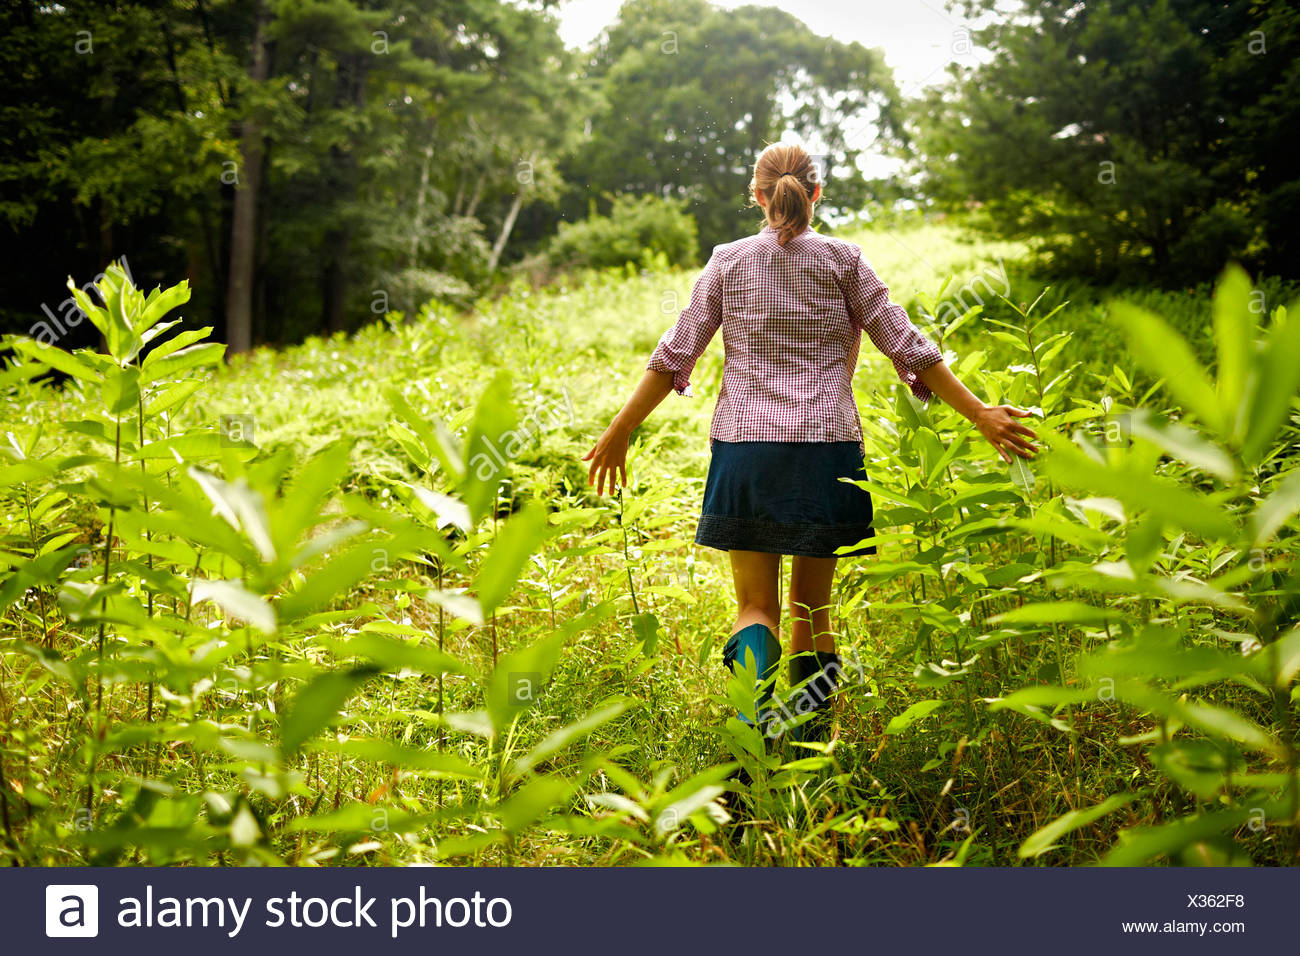 A woman walking through the undergrowth in woodland, with her arms brushing the tops of the wild plants. - Stock Image